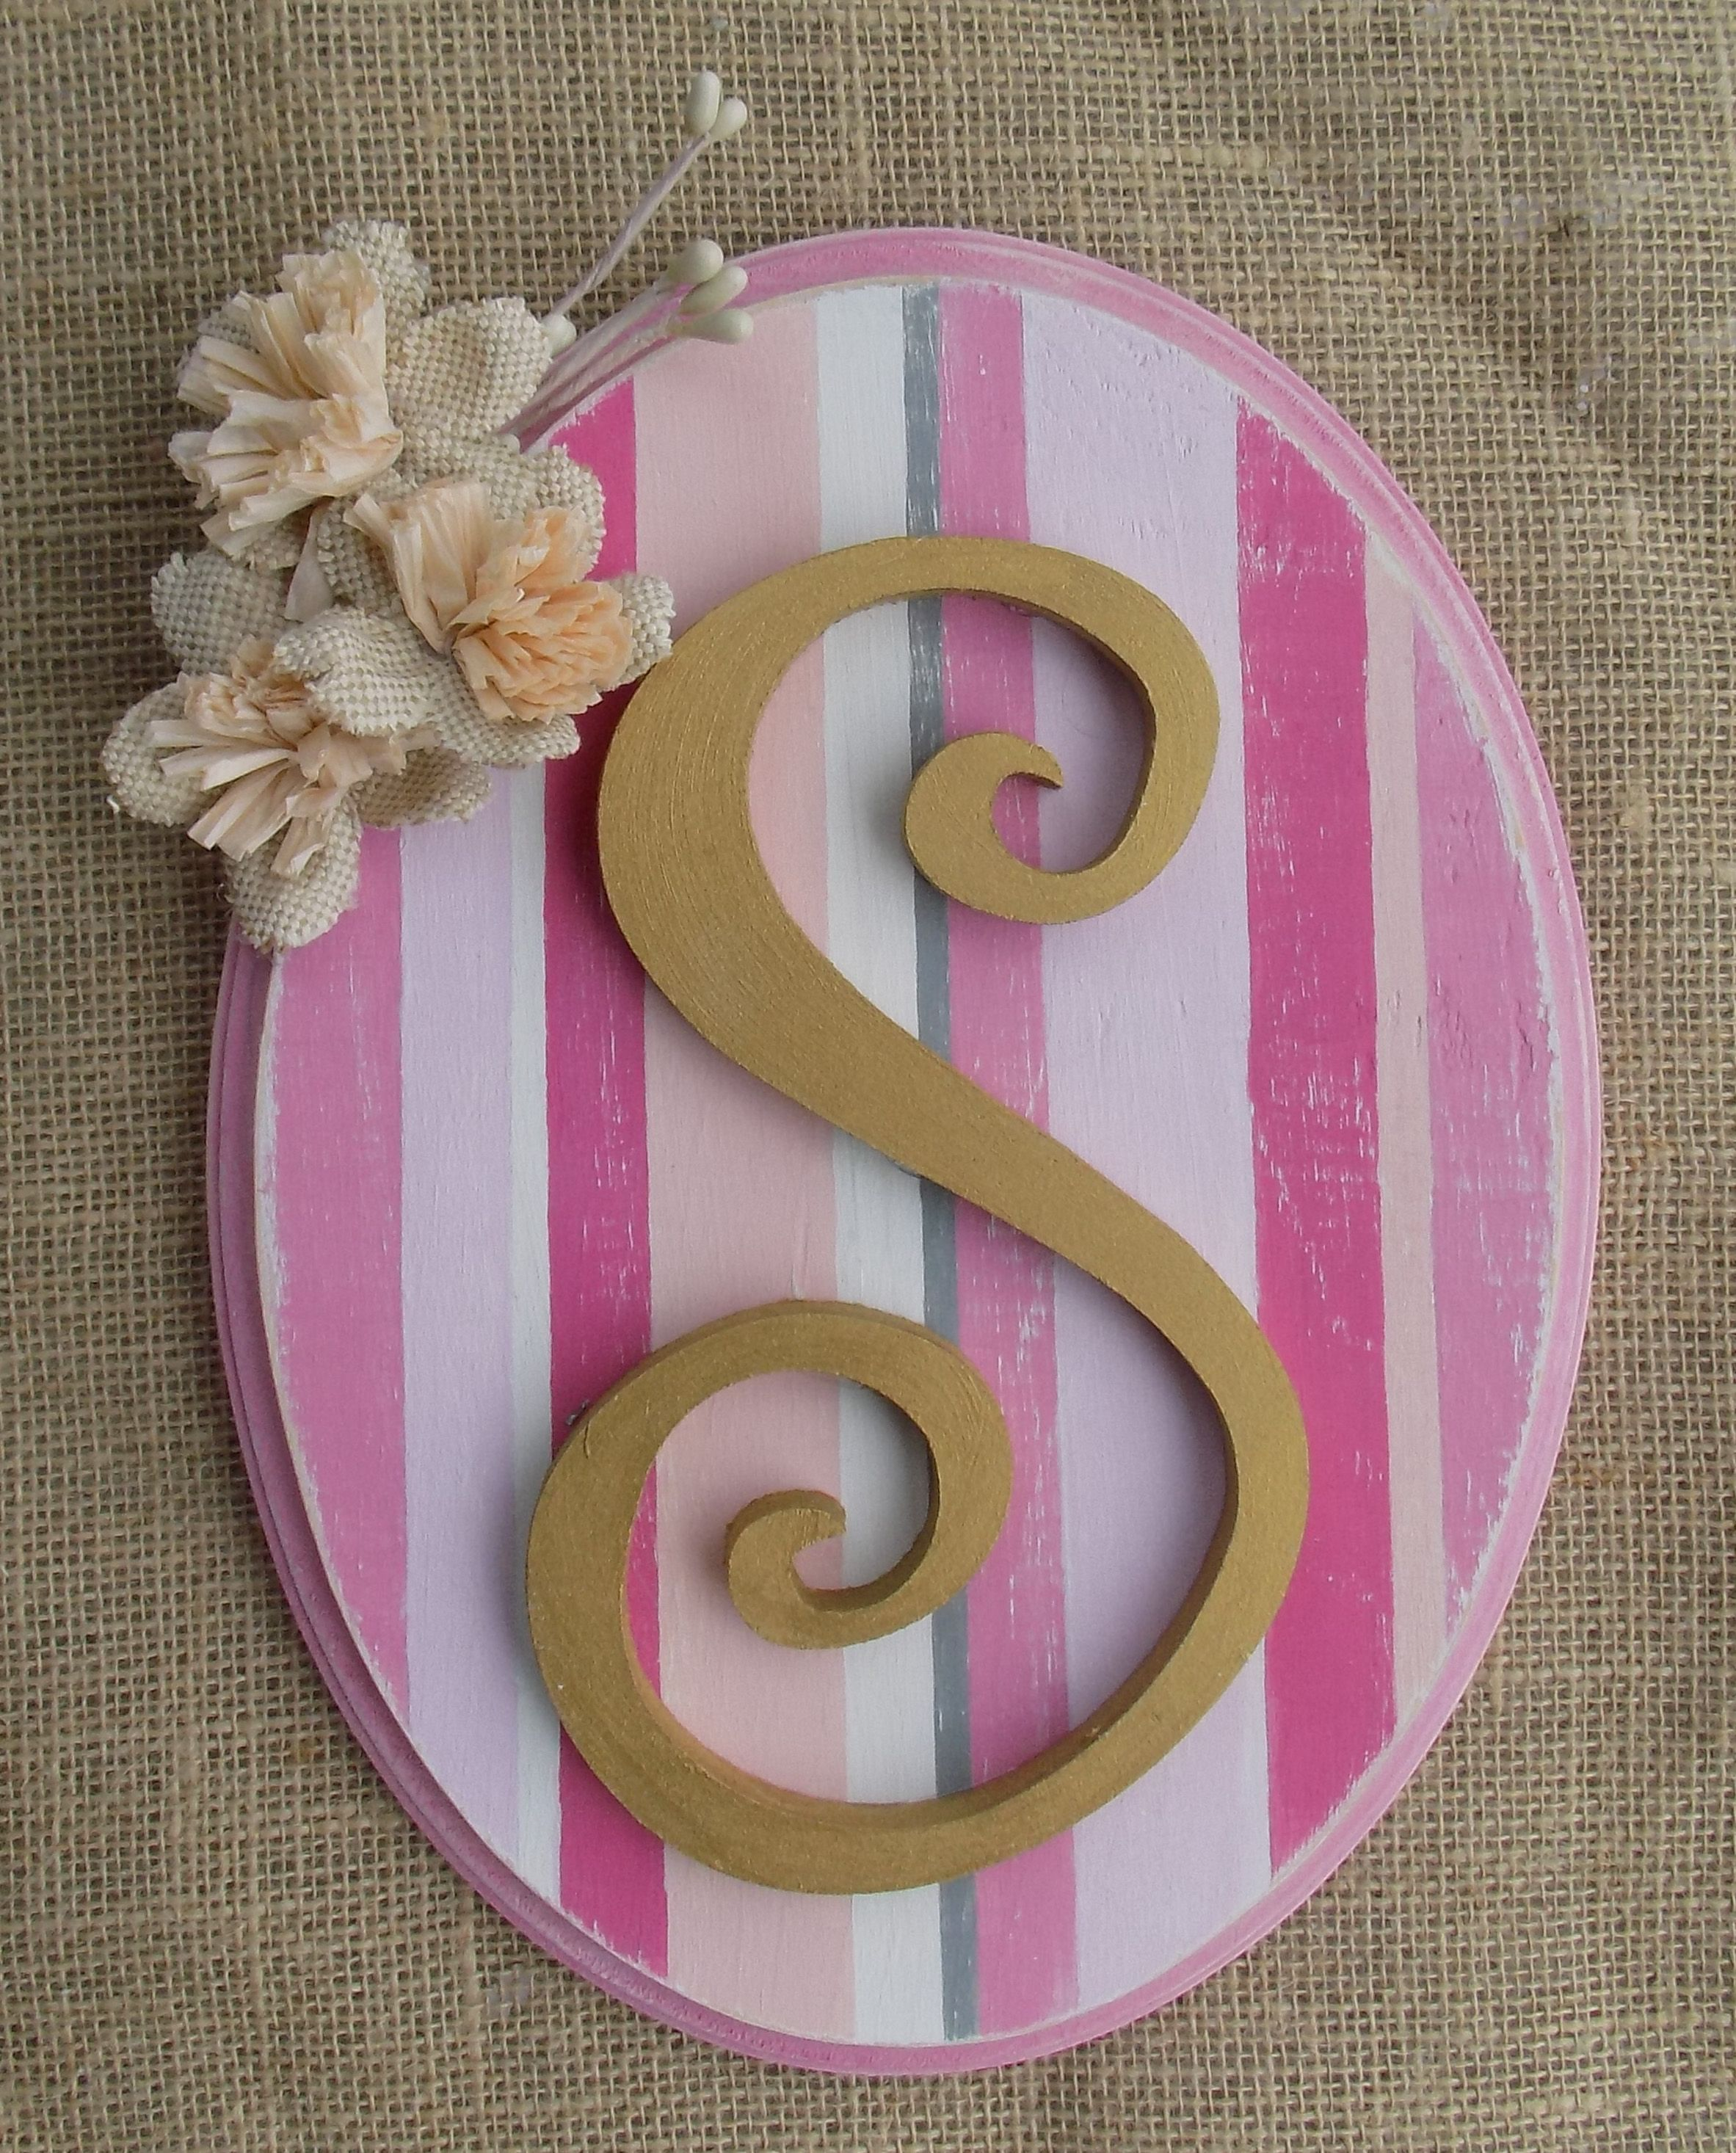 """11"""" x 14"""" Distressed Chic Personalized Letter Plaques  Please LIKE and RE-PIN! Find me on Facebook @ Gigi's Crafts & Decor or www.facebook.com/gigisvintagefurnitureanddecor"""